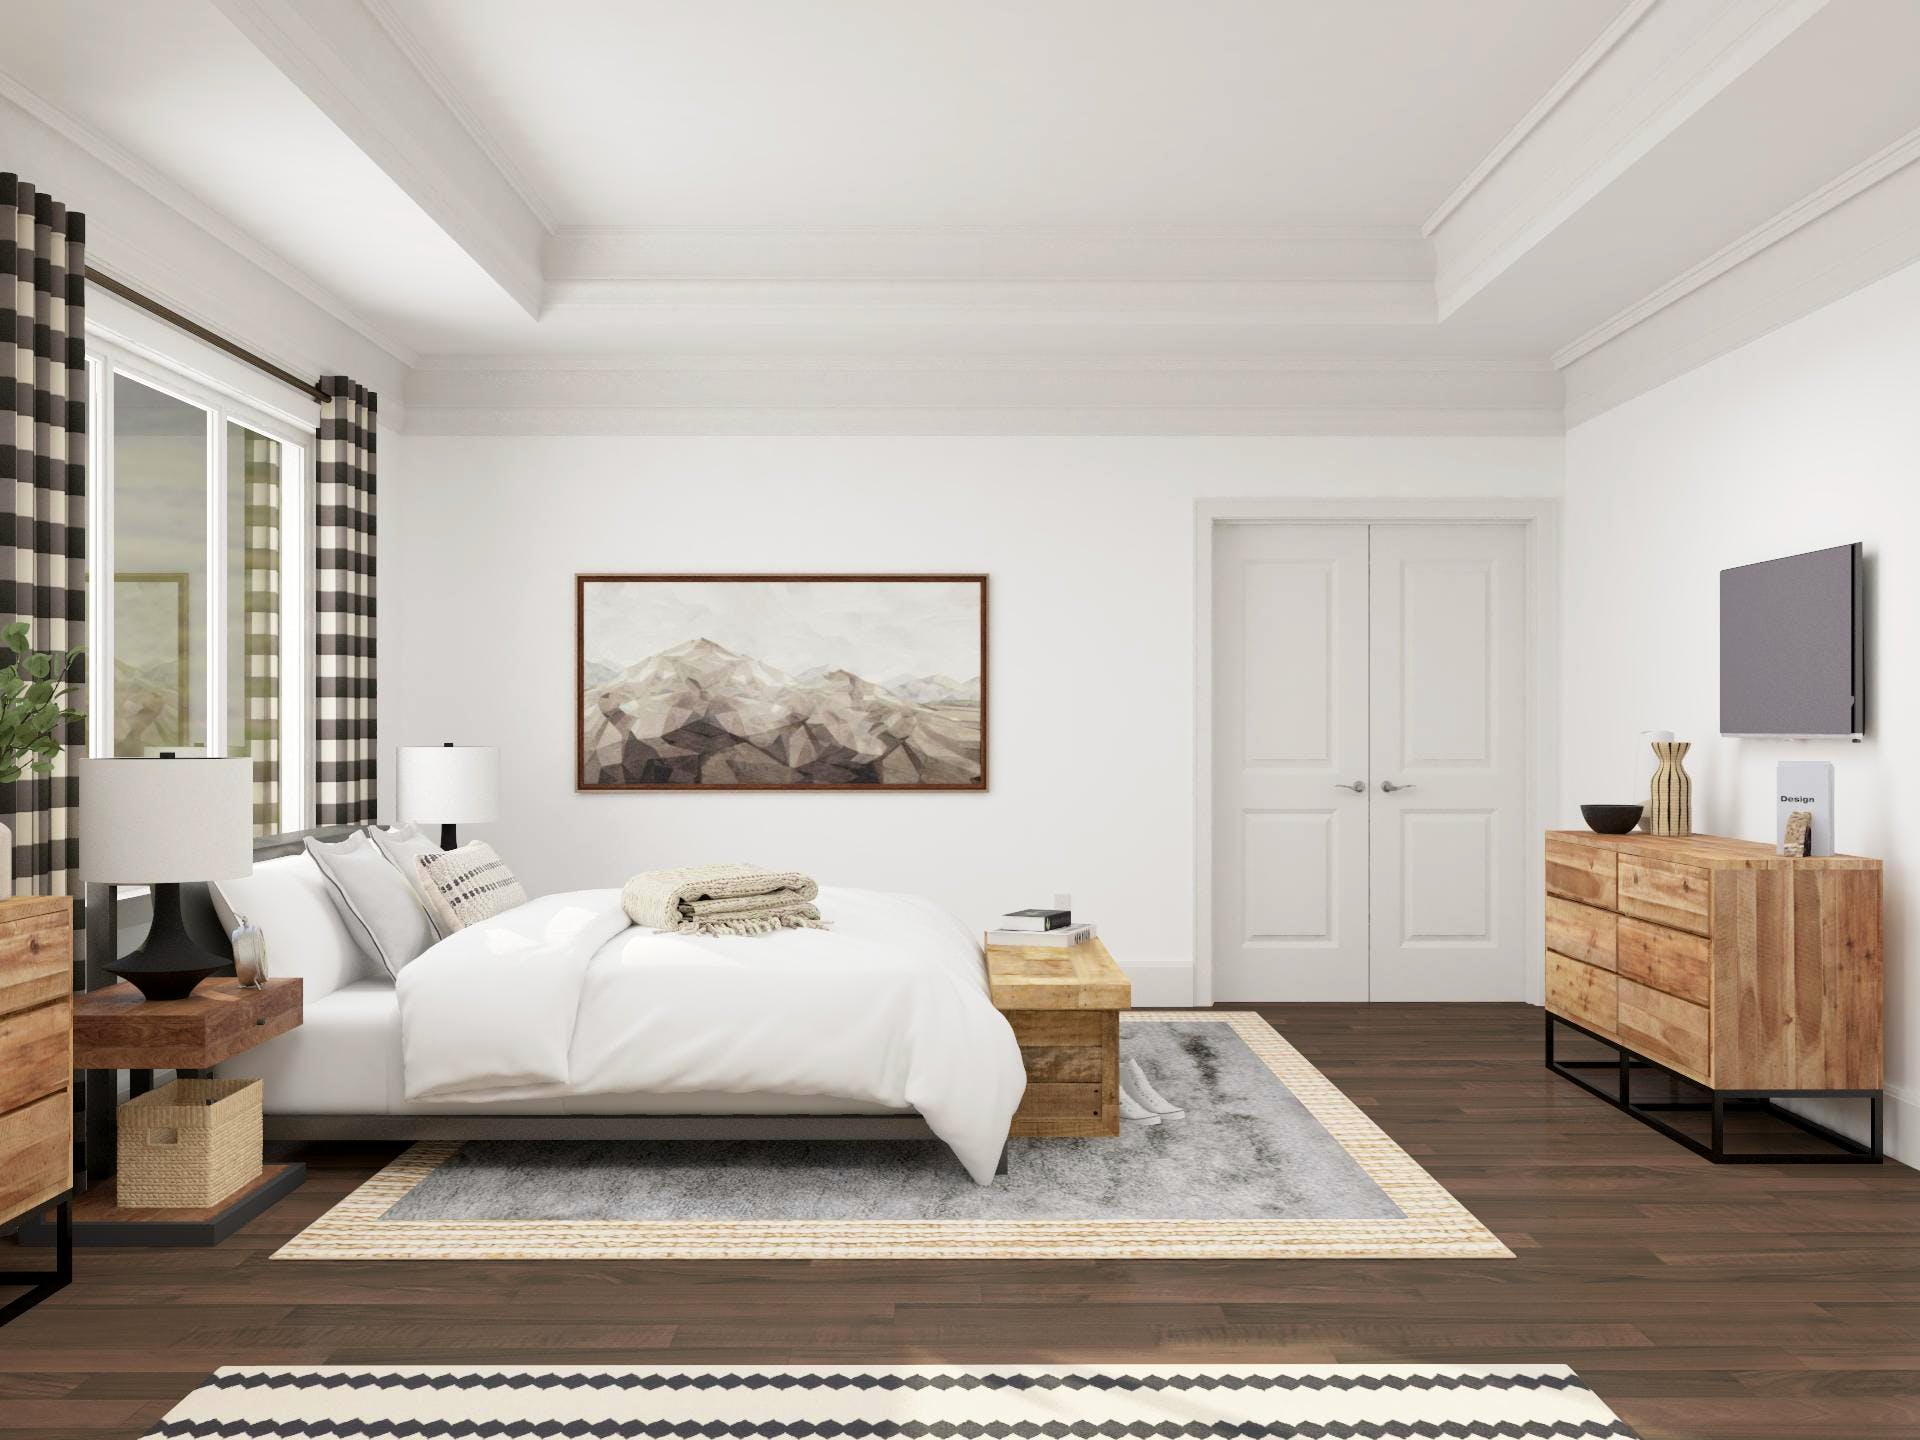 Modren Rustic Bedroom with Funtional TV Viewing Layout